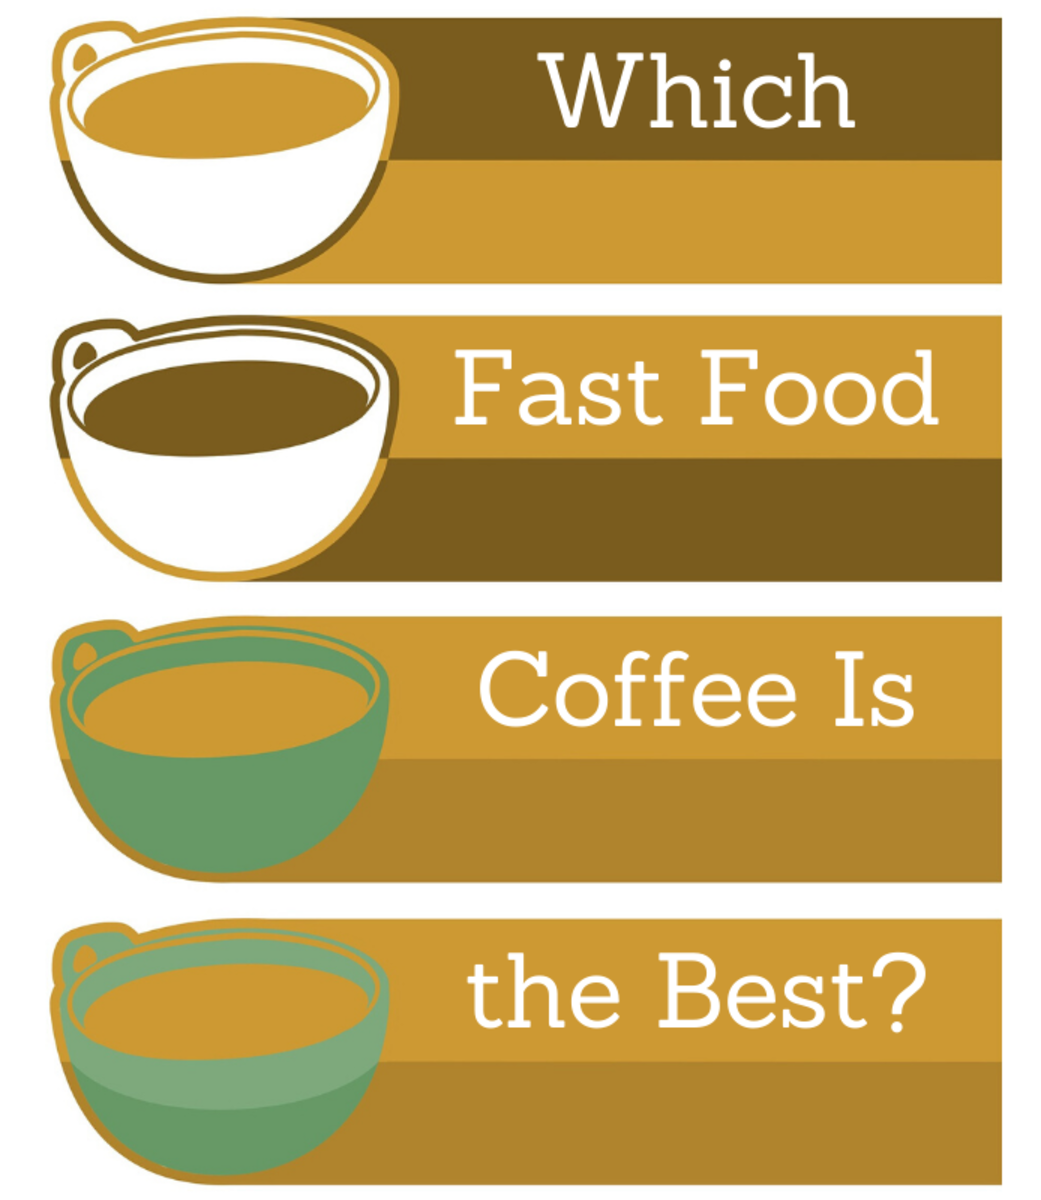 Which Fast Food Chain Has the Best Coffee?